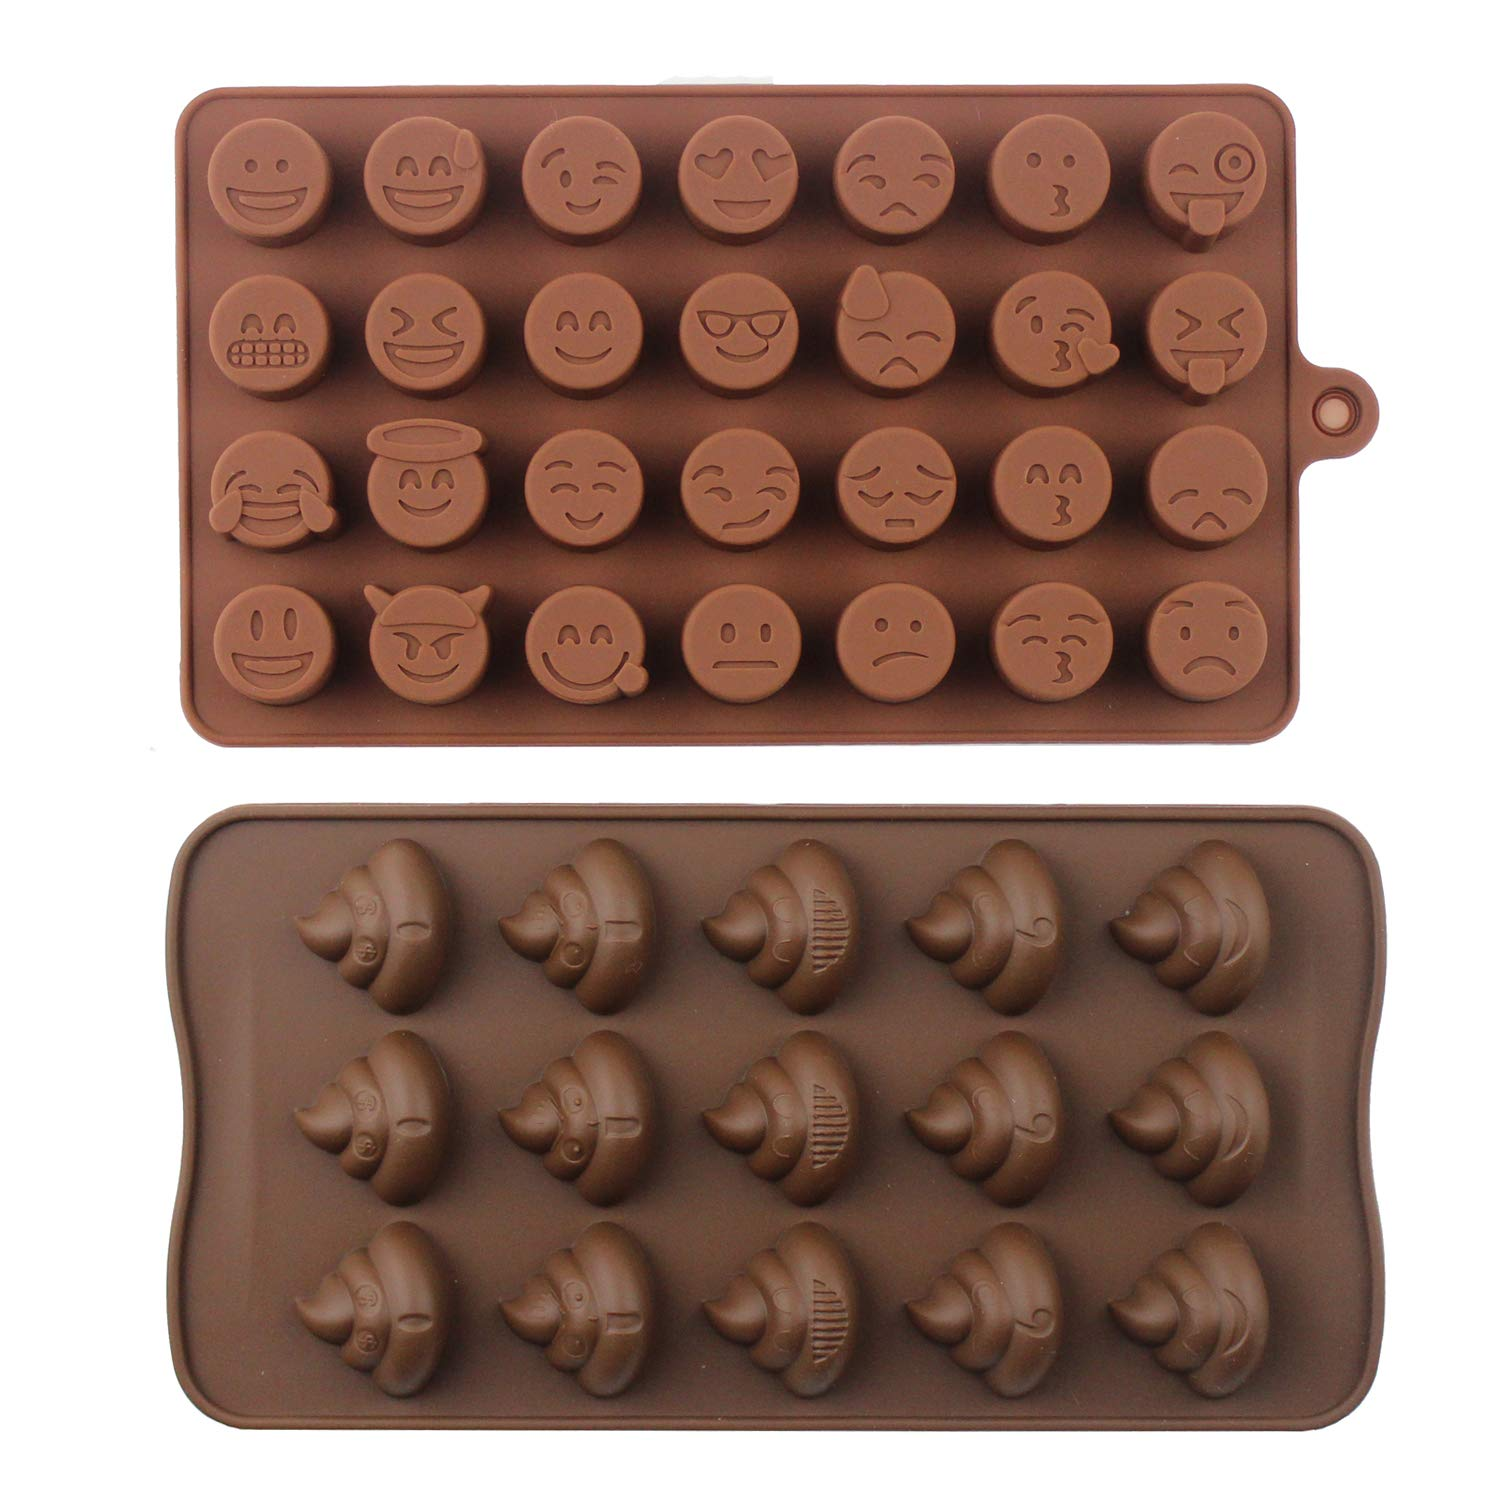 Emoji Chocolate Ice Cube Mold Poop Shaped Candy Making Molds Silicone Baking Mould Ice Cube Tray Mini Pudding Gummy Maker A Party Dog